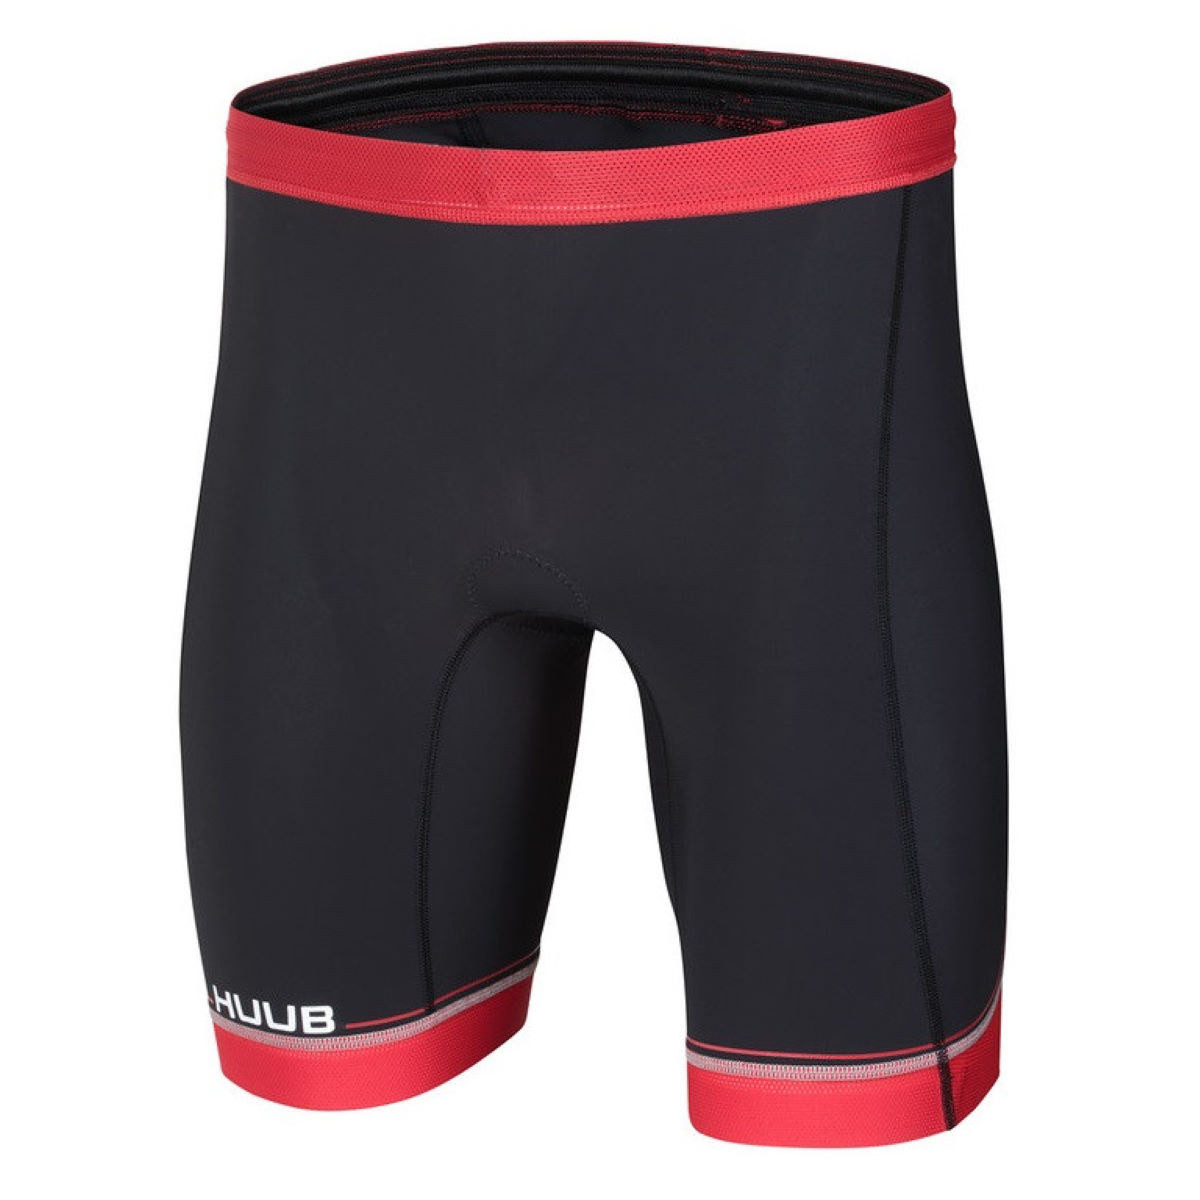 Cuissard court HUUB Core Tri - XXL Noir/Rouge Shorts de triathlon